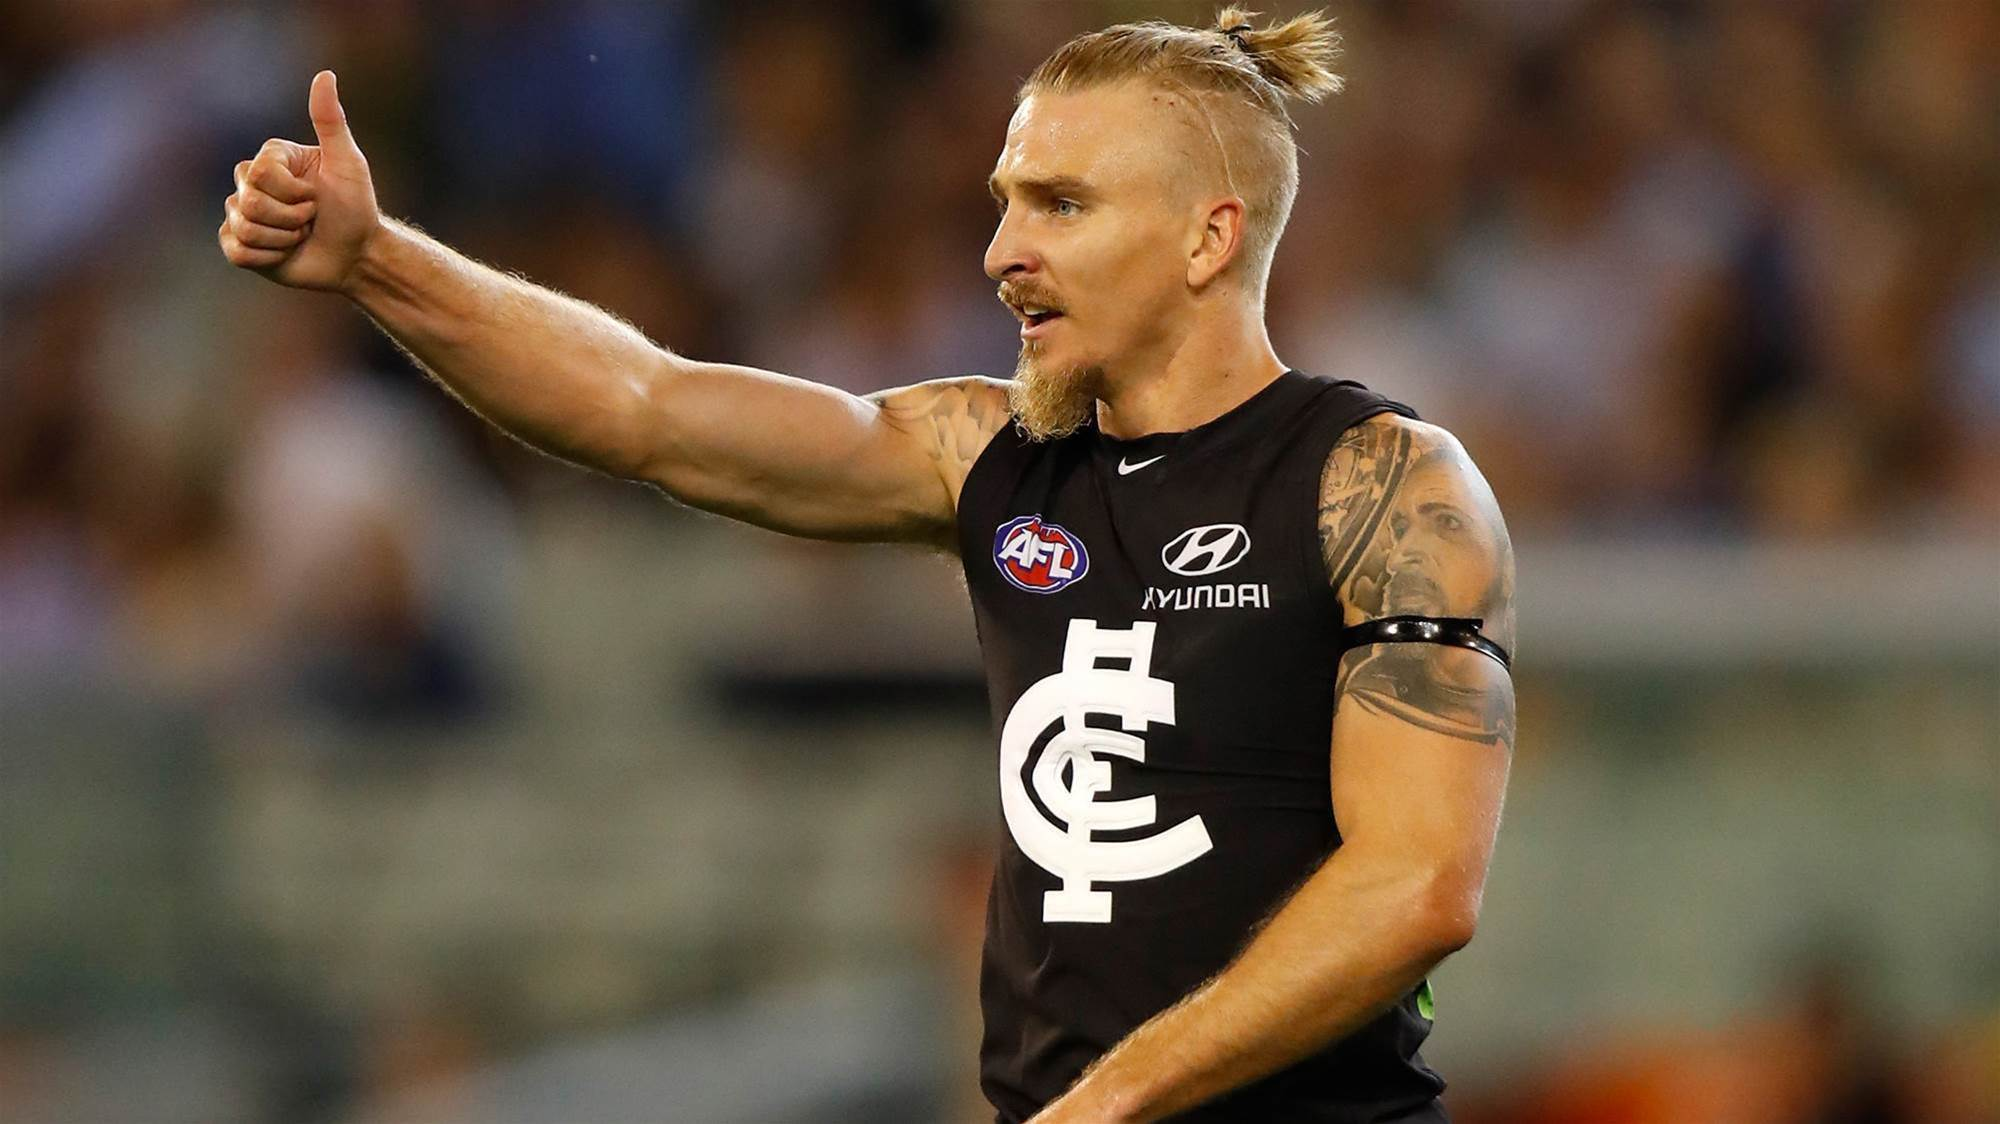 Carlton's Armfield hangs up the boots